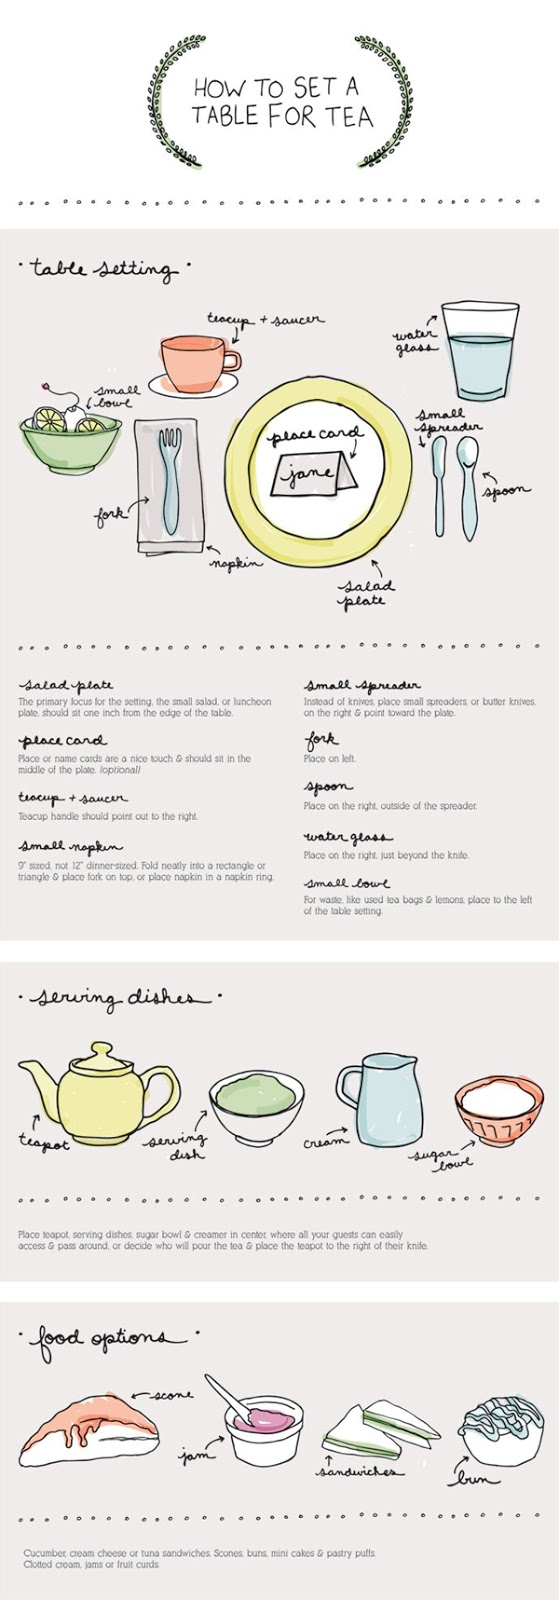 A Guide to Planning an Afternoon Tea Party at Home